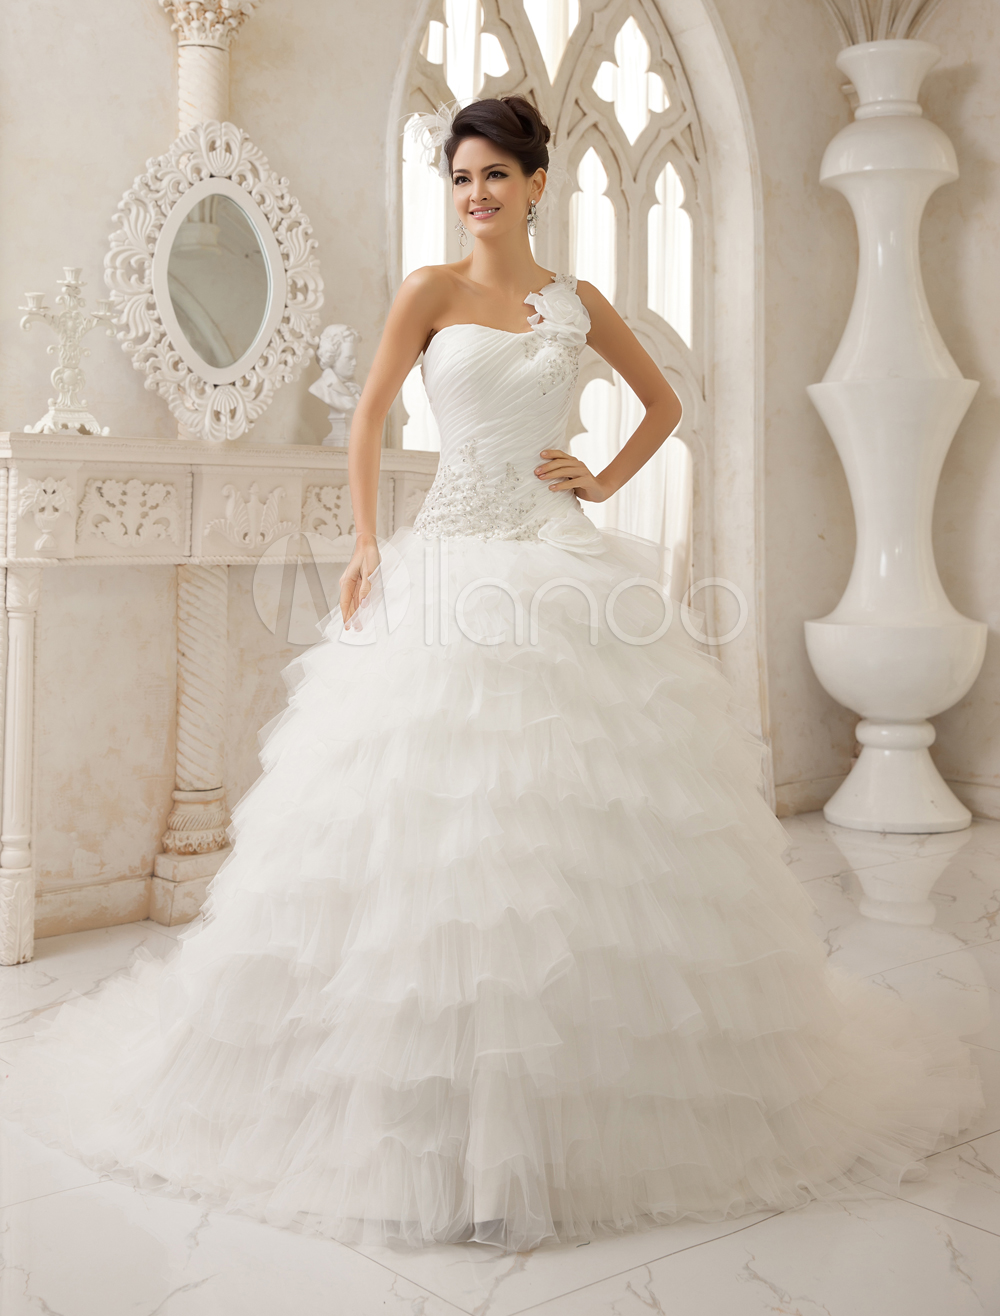 Stunning Ivory Ball Gown Removable One Shoulder Strap Ruffles Court Train Bridal Wedding Gown